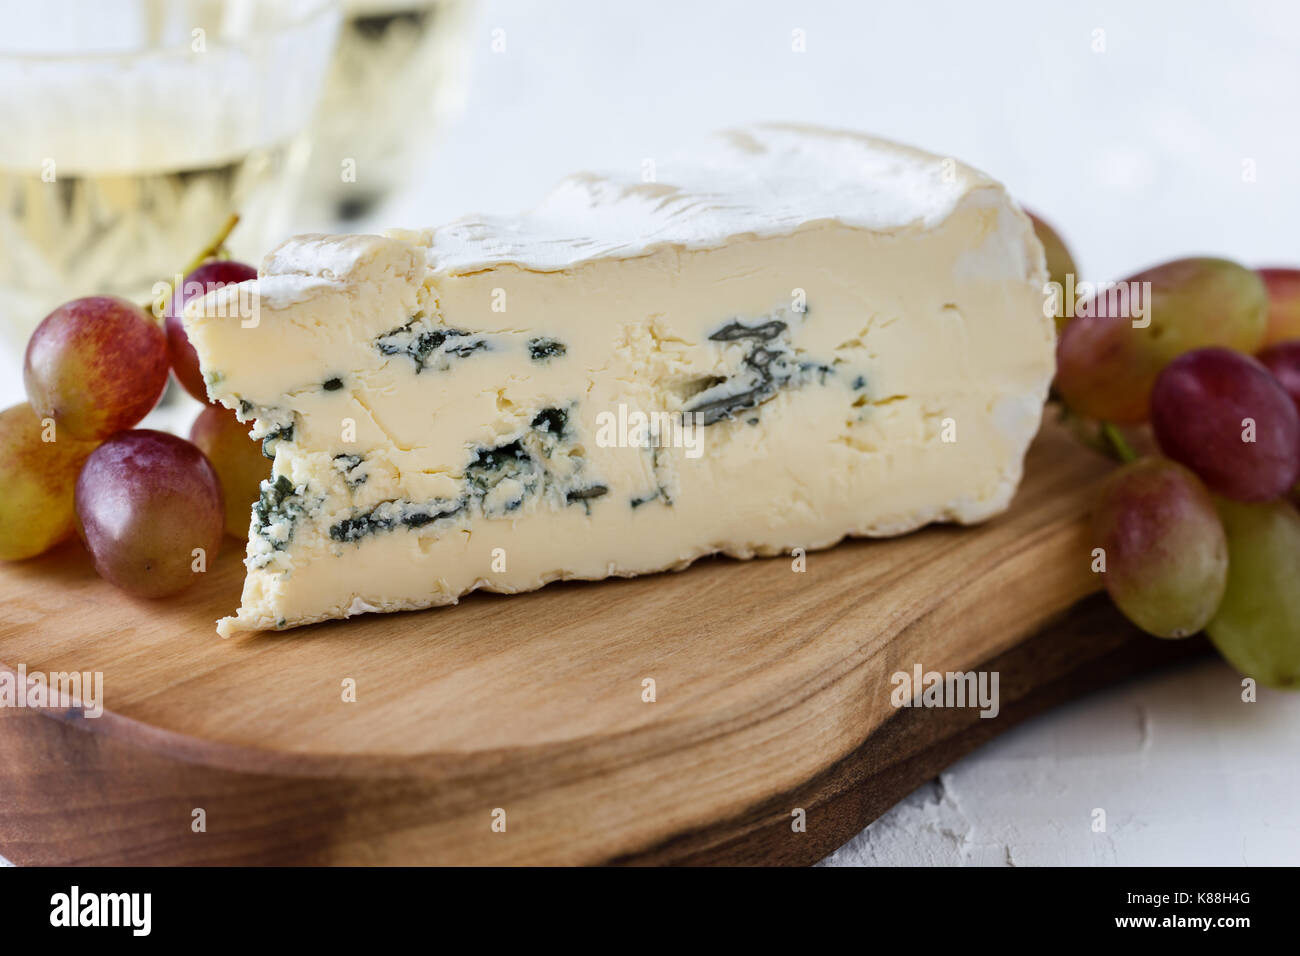 Blue cheese  served with fresh grapes and two glasses of white wine on rustic cutting board, cheese platter - Stock Image